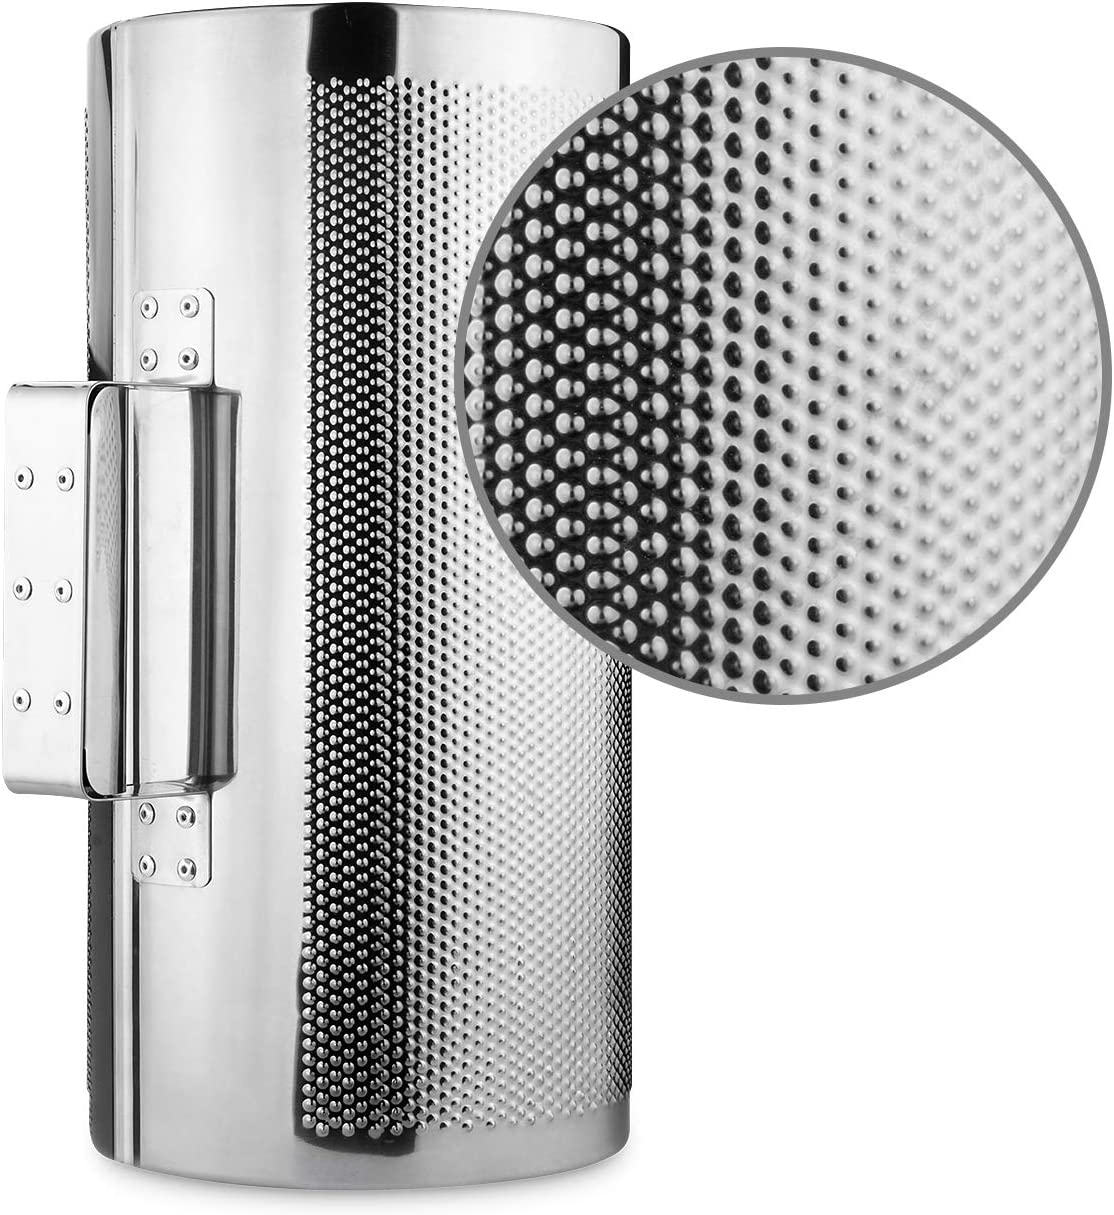 Abuff 12 x 6 Stainless Steel Guiro Instrument with Scraper Latin Percussion Instrument Musical Training Tool Metal Guiro Shaker